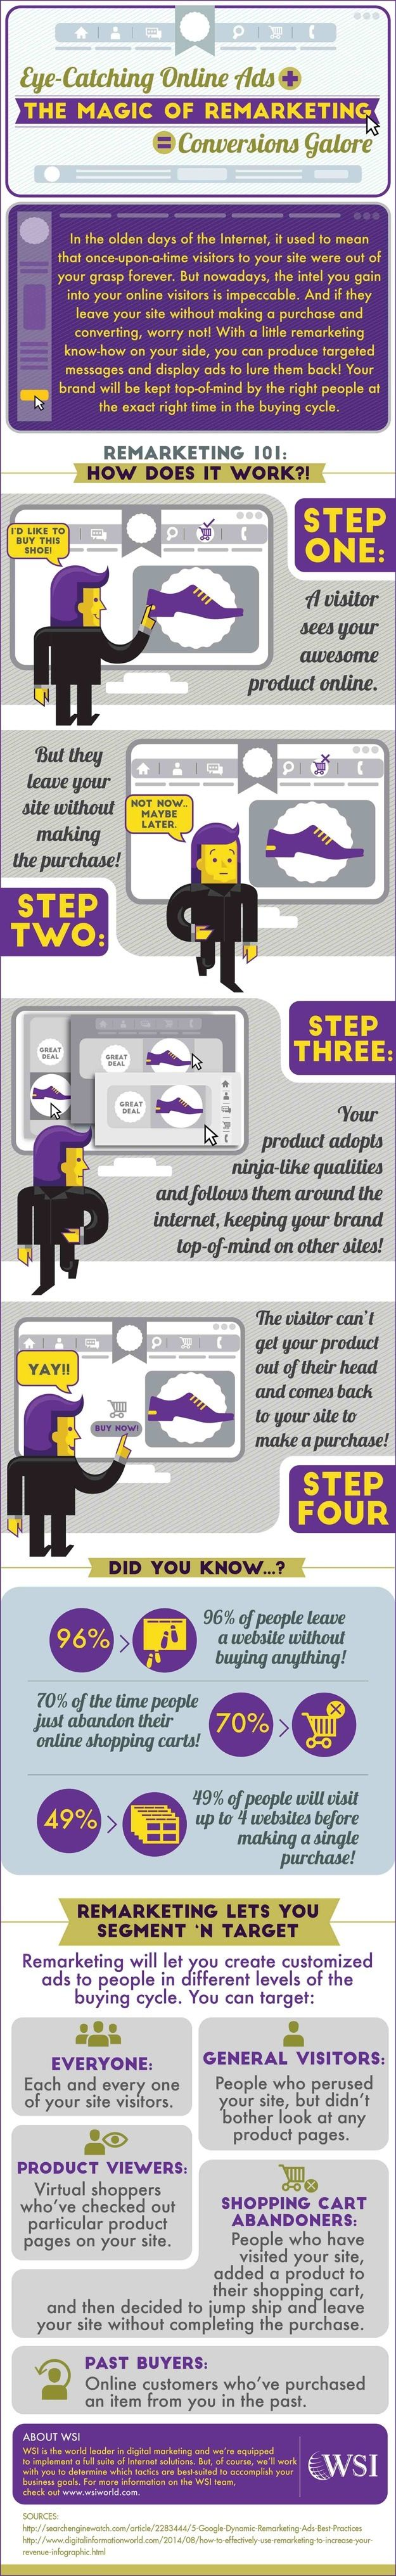 Eye Catching Ads Plus The Magic of Remarketing Equal to Conversions Galore #infographic